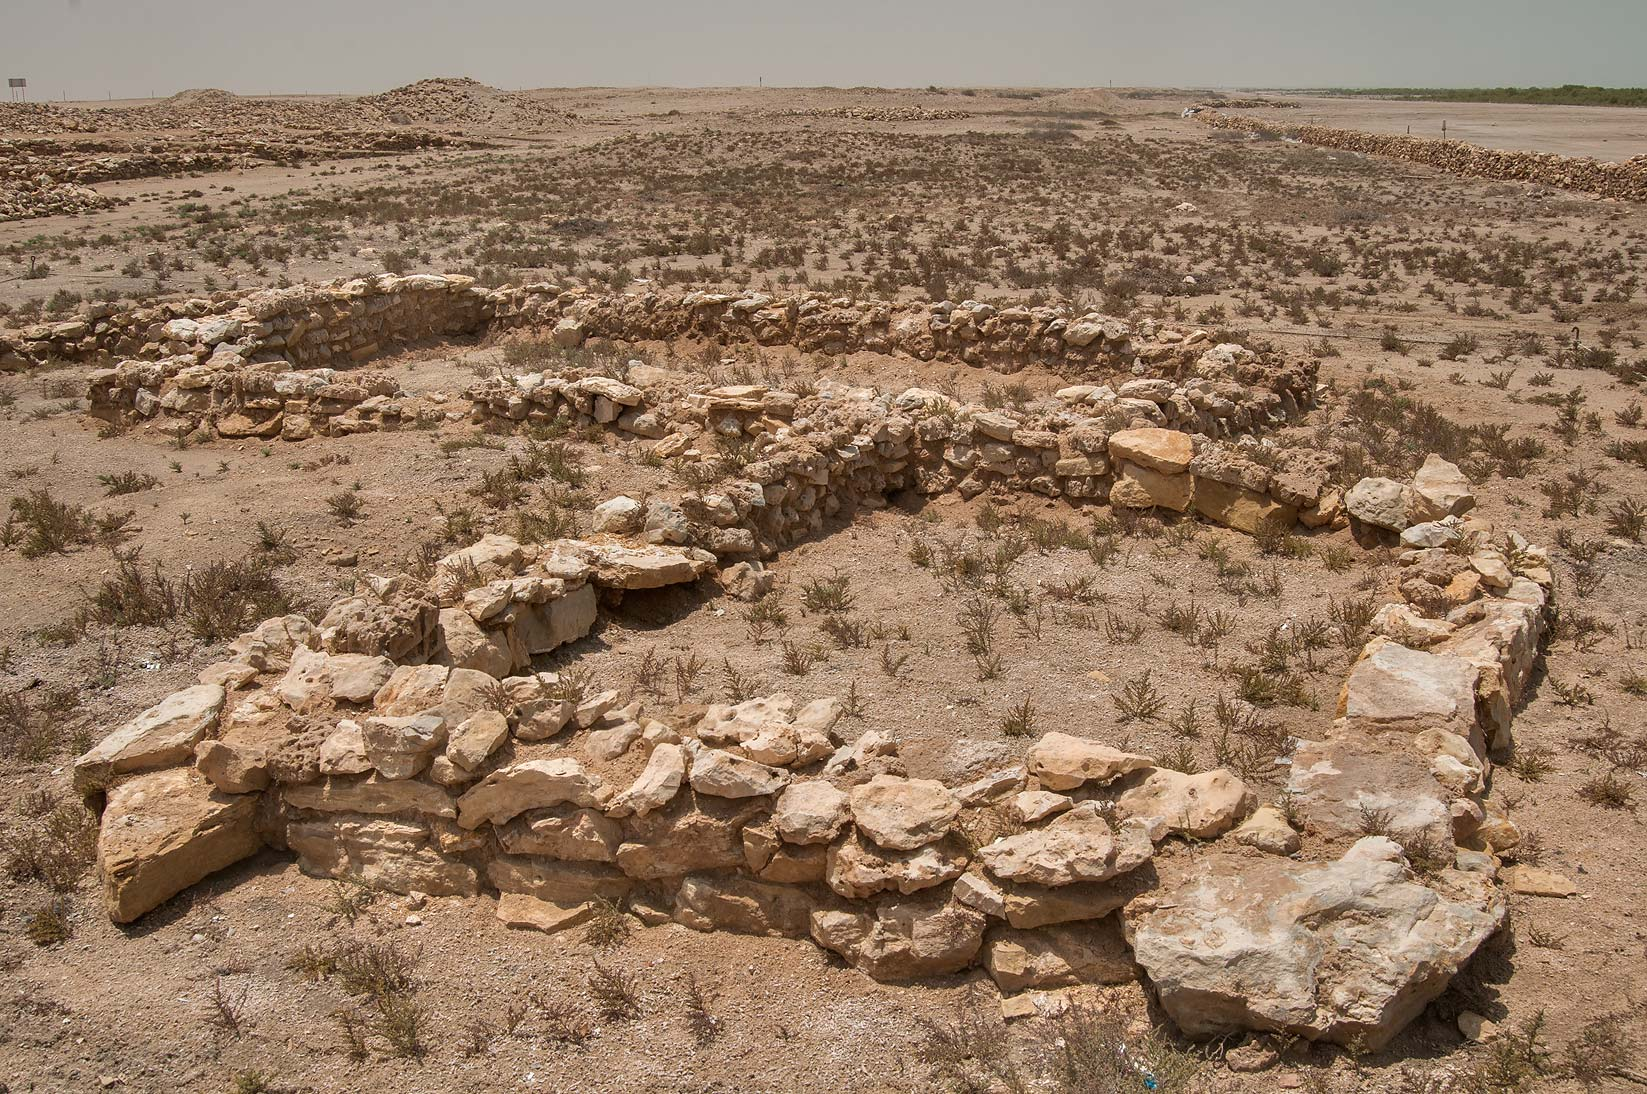 Excavations at al-Ruwaydah, a late Islamic site near Ruwais in northern Qatar